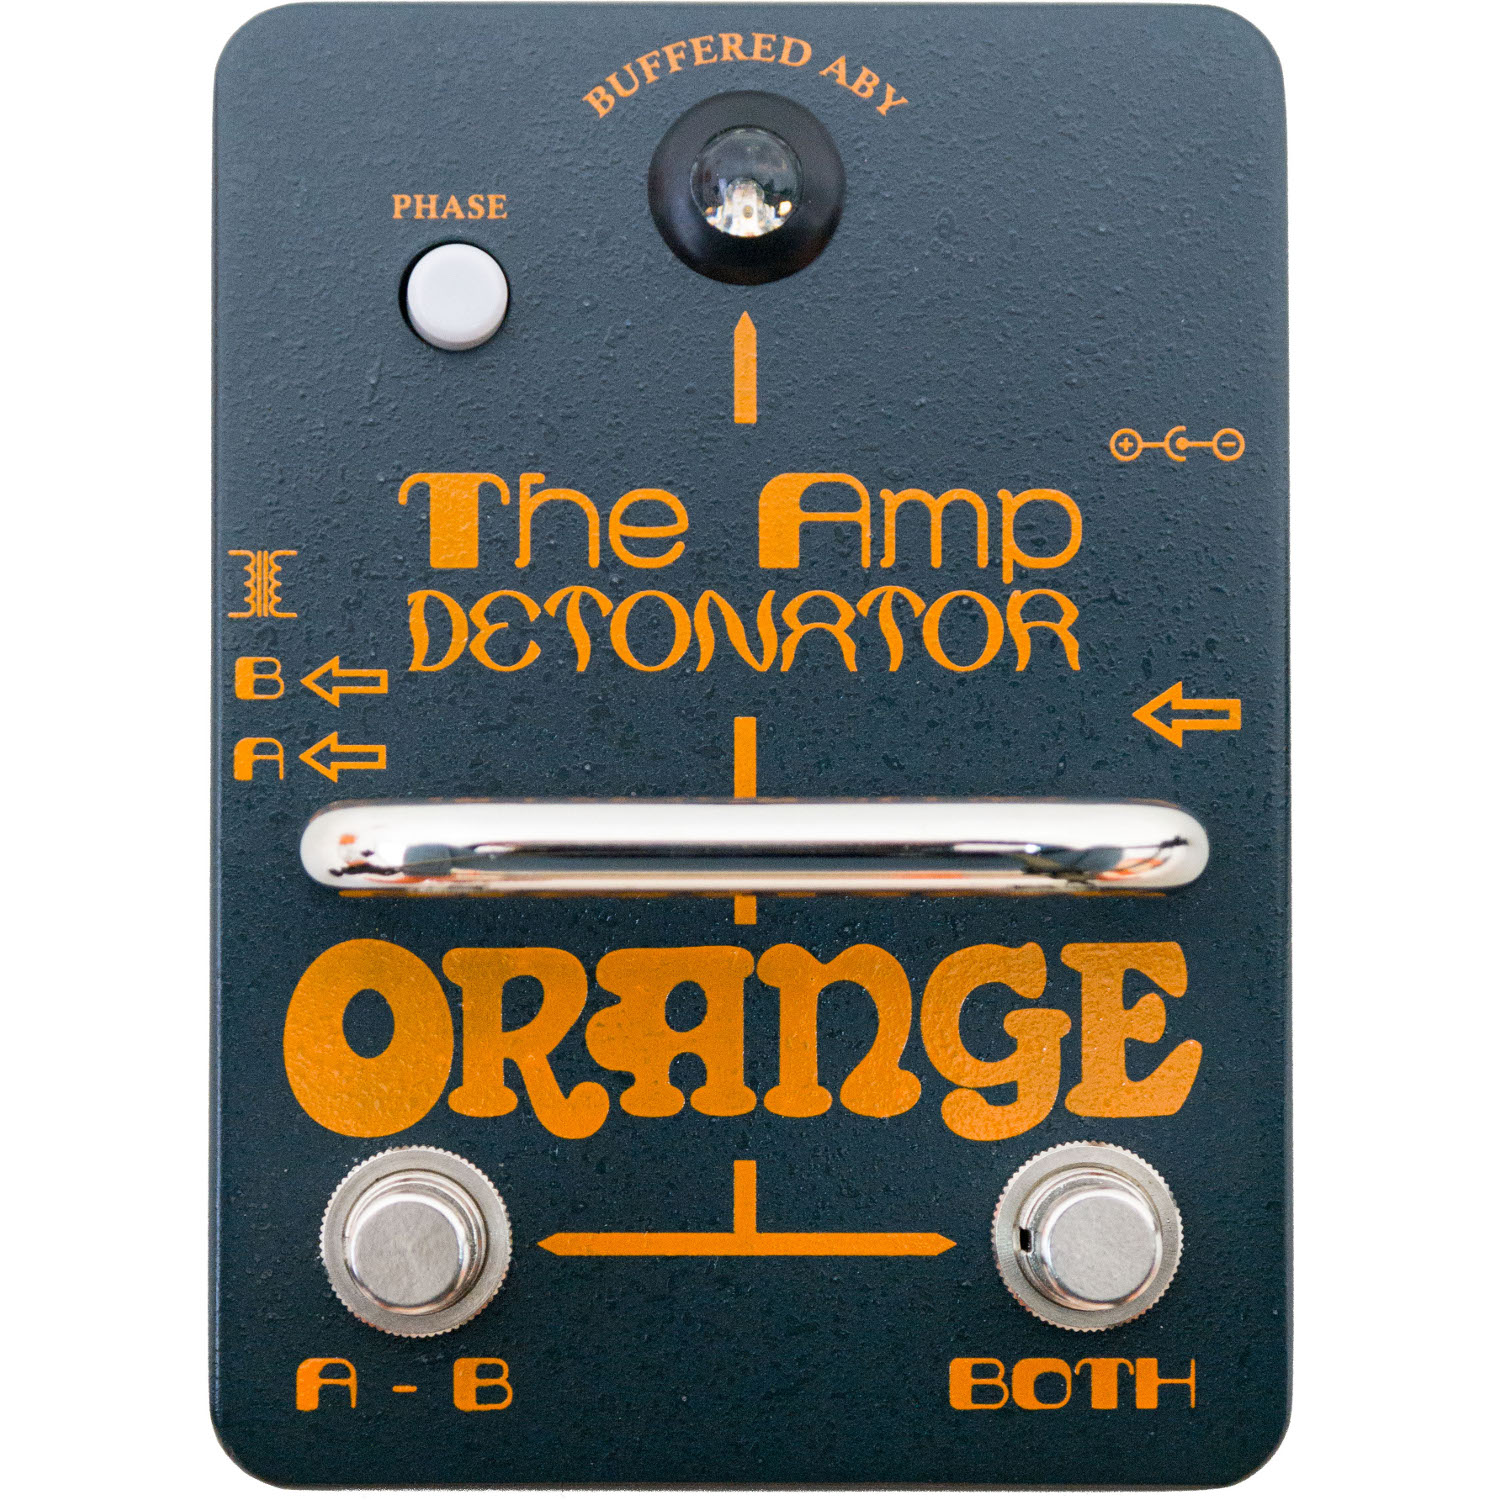 Orange The Amp Detonator ABY Splitter Combiner